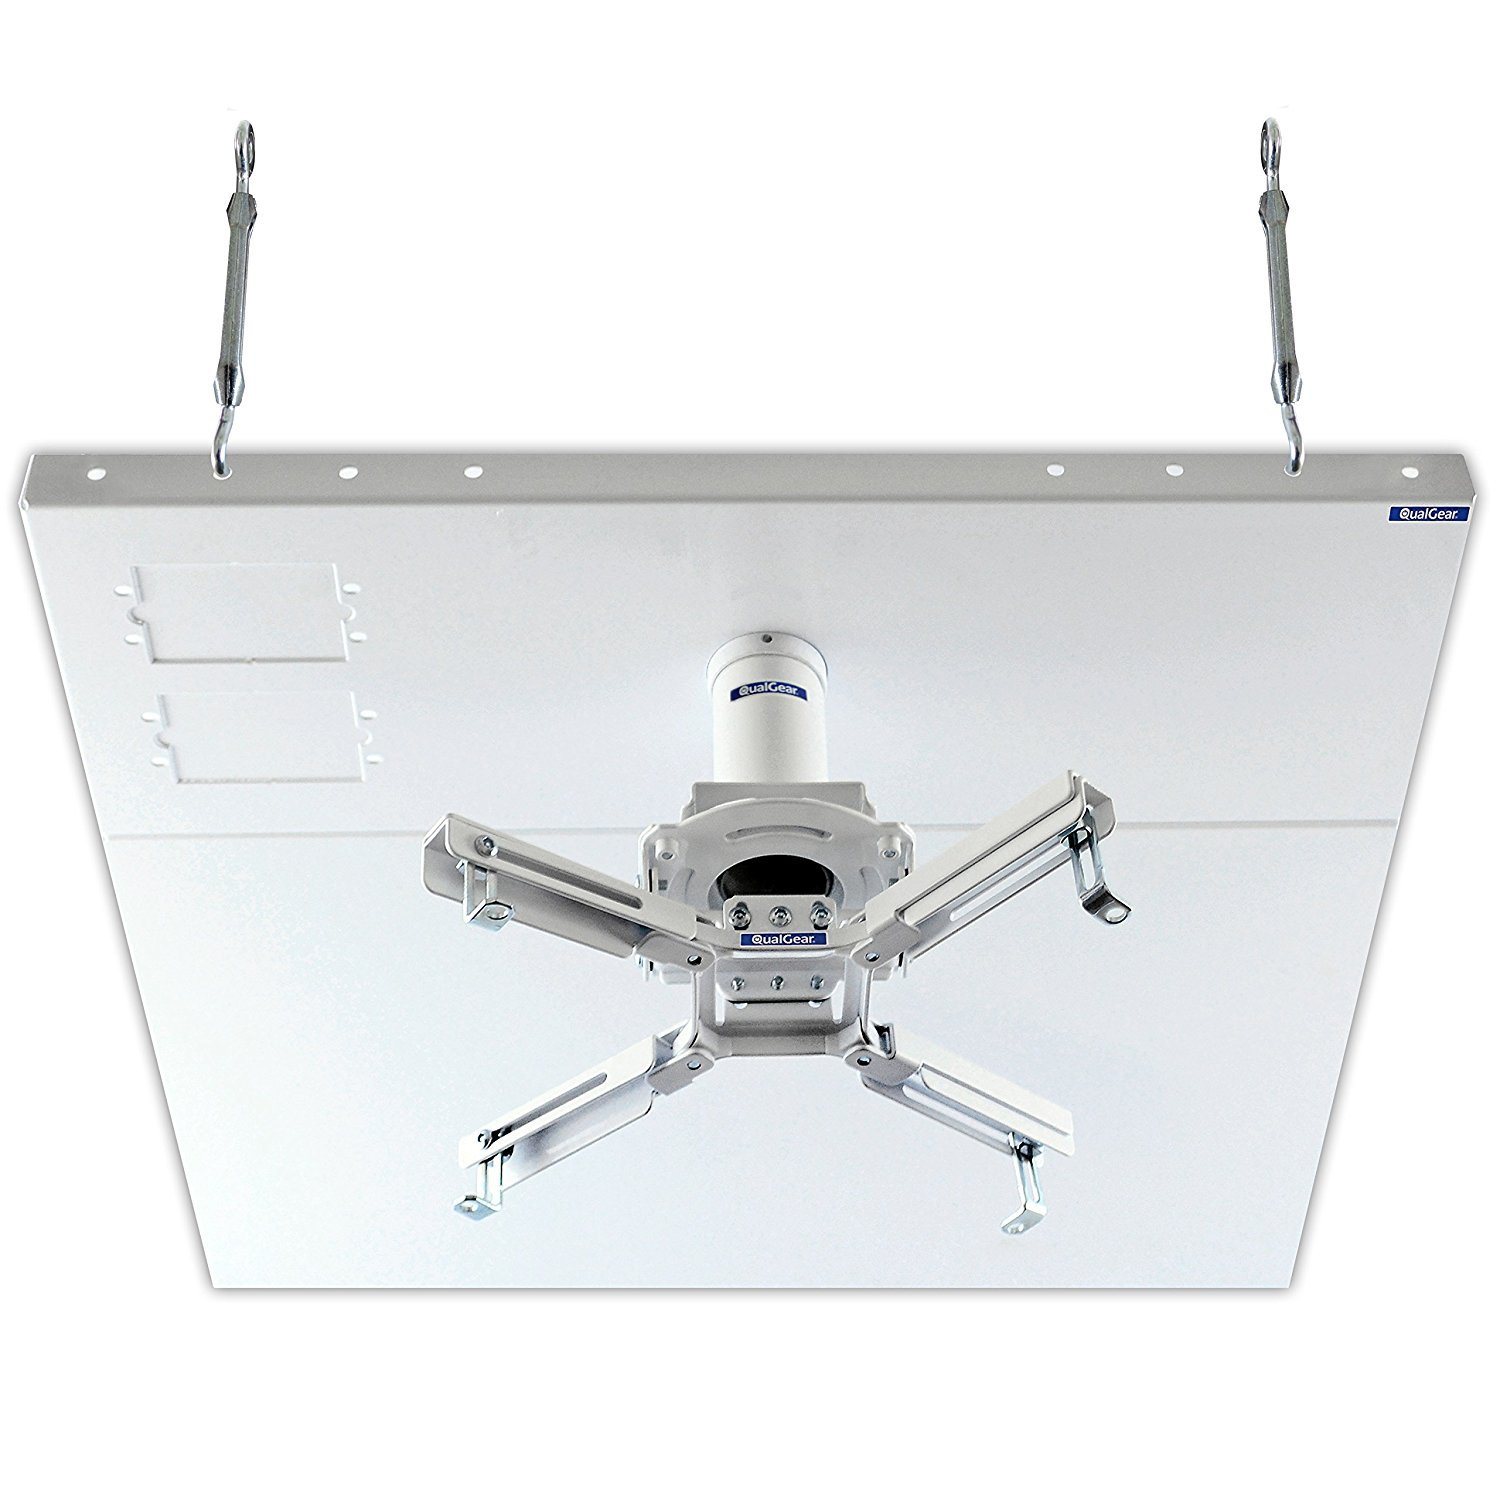 QualGear Pro-AV QG-KIT-S2-3IN-W Projector Mount Kit Accessory Suspended Ceiling 2'x2' Adapter, White by QualGear